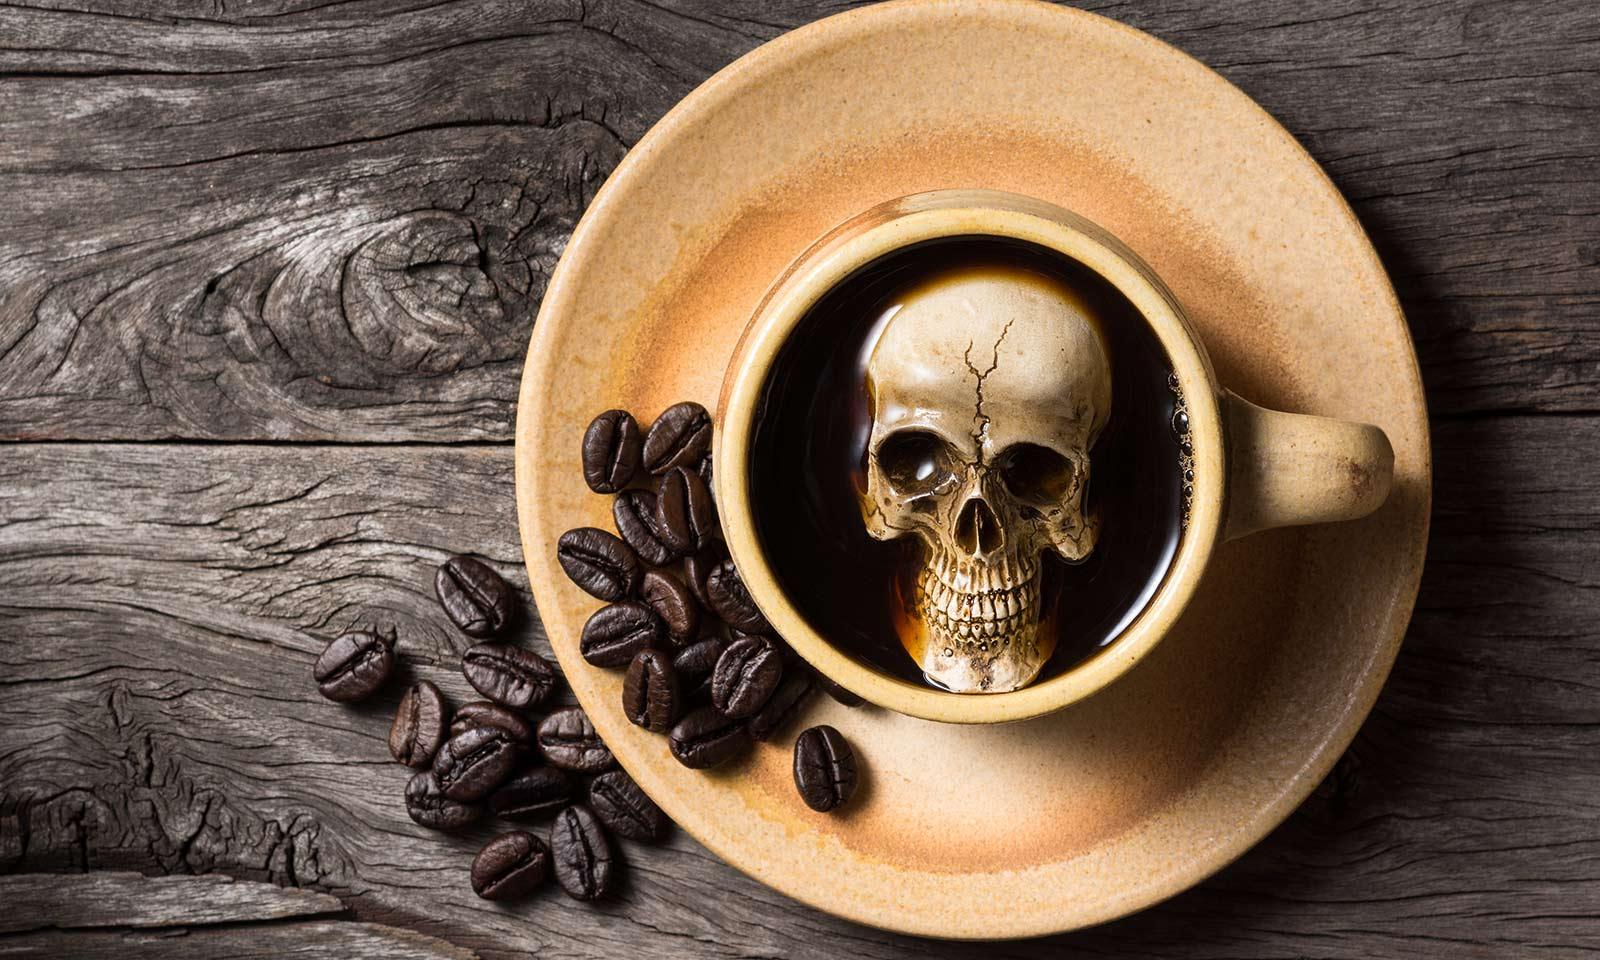 Caffeine Is A Drug And Excessive Amounts Can Be Dangerous